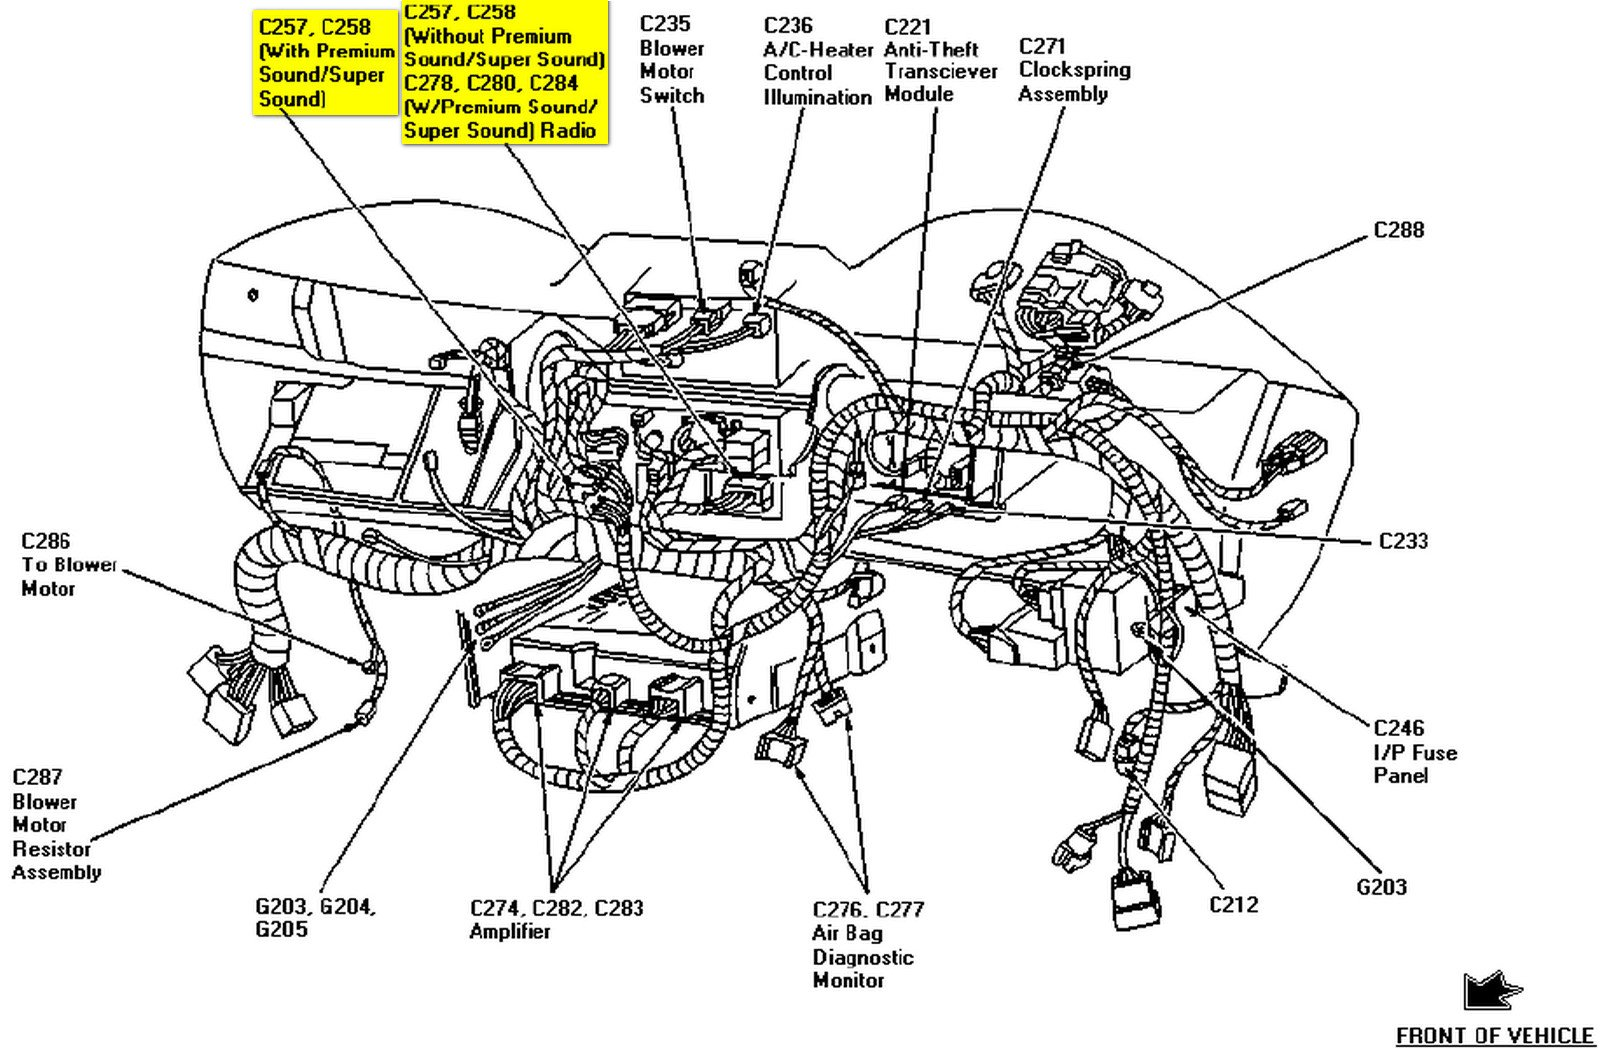 2010 01 23_022148_97_Mustang_C257_connector_location ford mach 460 wiring trusted wiring diagram online